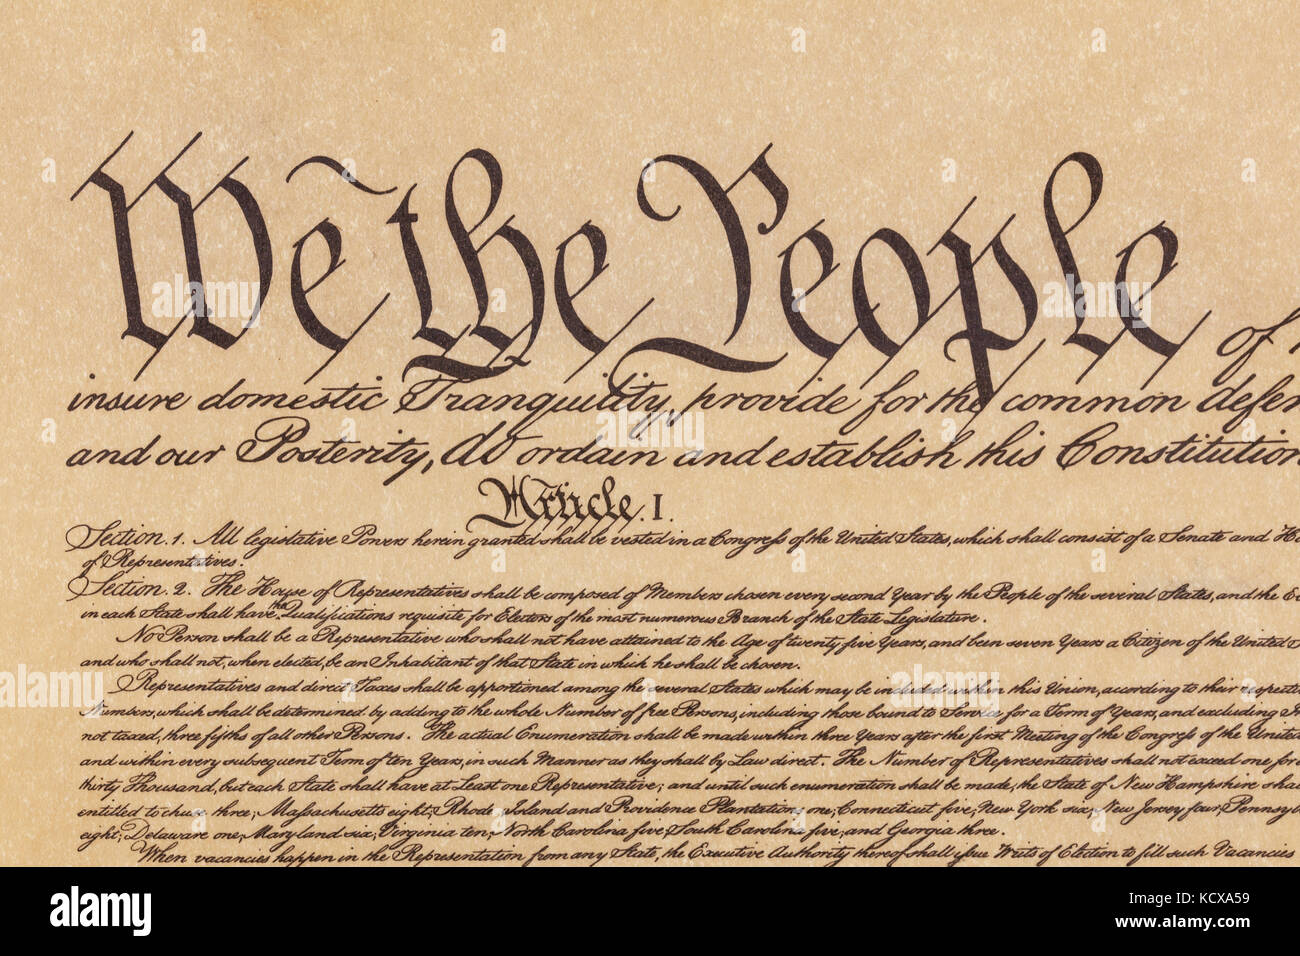 Close Up Shot Of The Preamble To The Constitution Of The